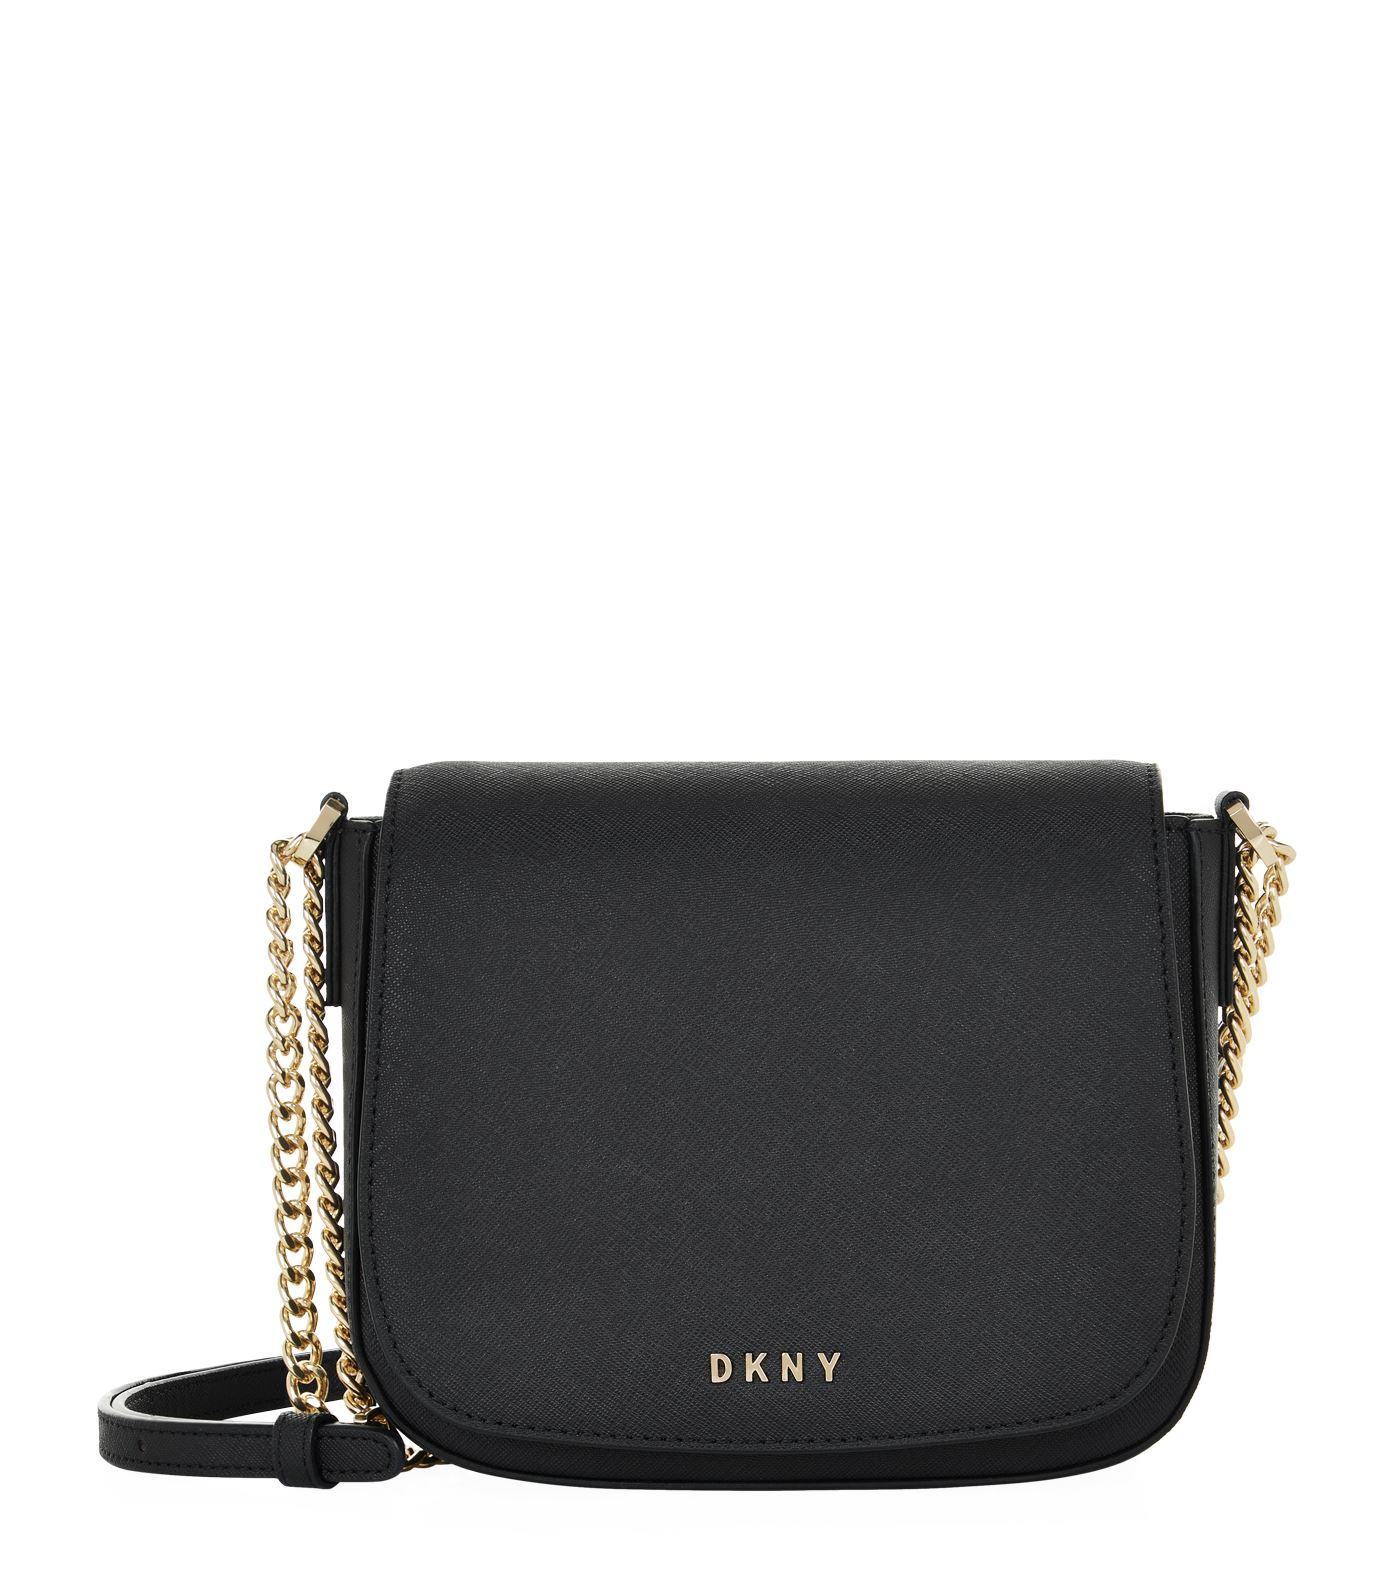 dkny small bryant park flap cross body bag in black lyst. Black Bedroom Furniture Sets. Home Design Ideas